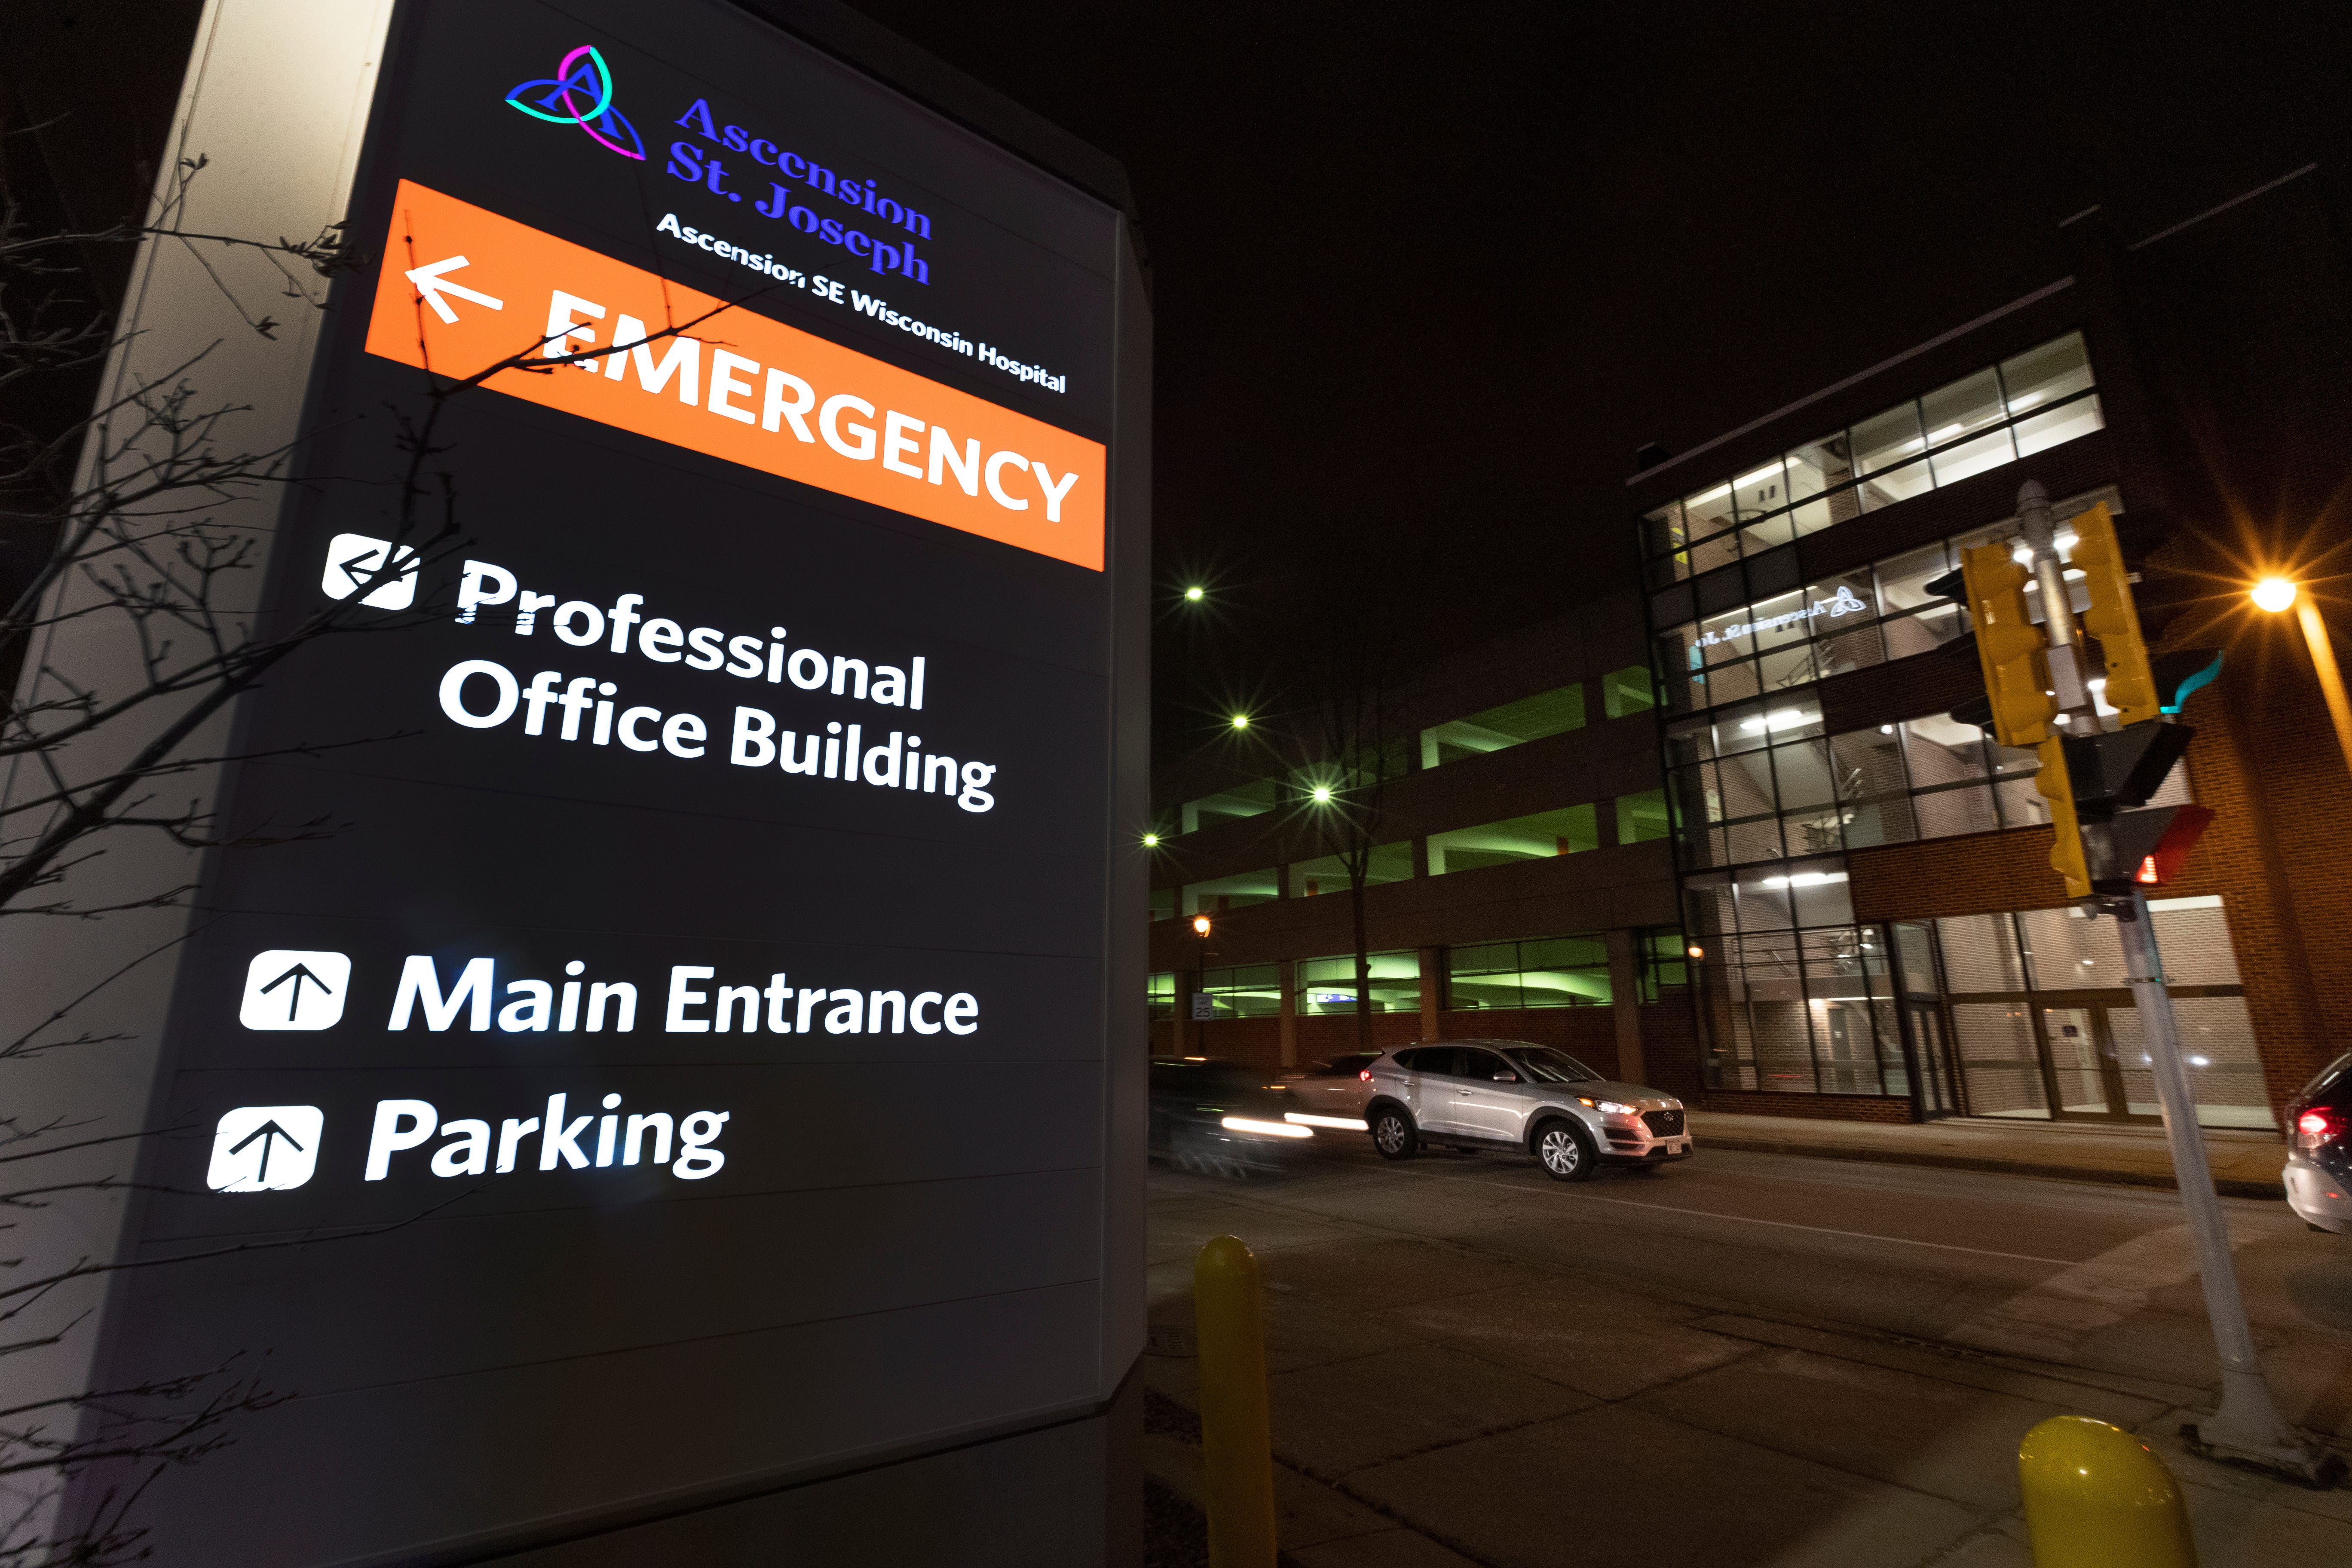 The parking ramp for Ascension SE Wisconsin Hospital - St. Joseph Campus is shown Tuesday, February 25, 2020 in Milwaukee, Wis. The Milwaukee Journal Sentinel enlisted the aid of an architectural security consultant to evaluate parking ramps at five Milwaukee hospitals.MARK HOFFMAN/MILWAUKEE JOURNAL SENTINEL